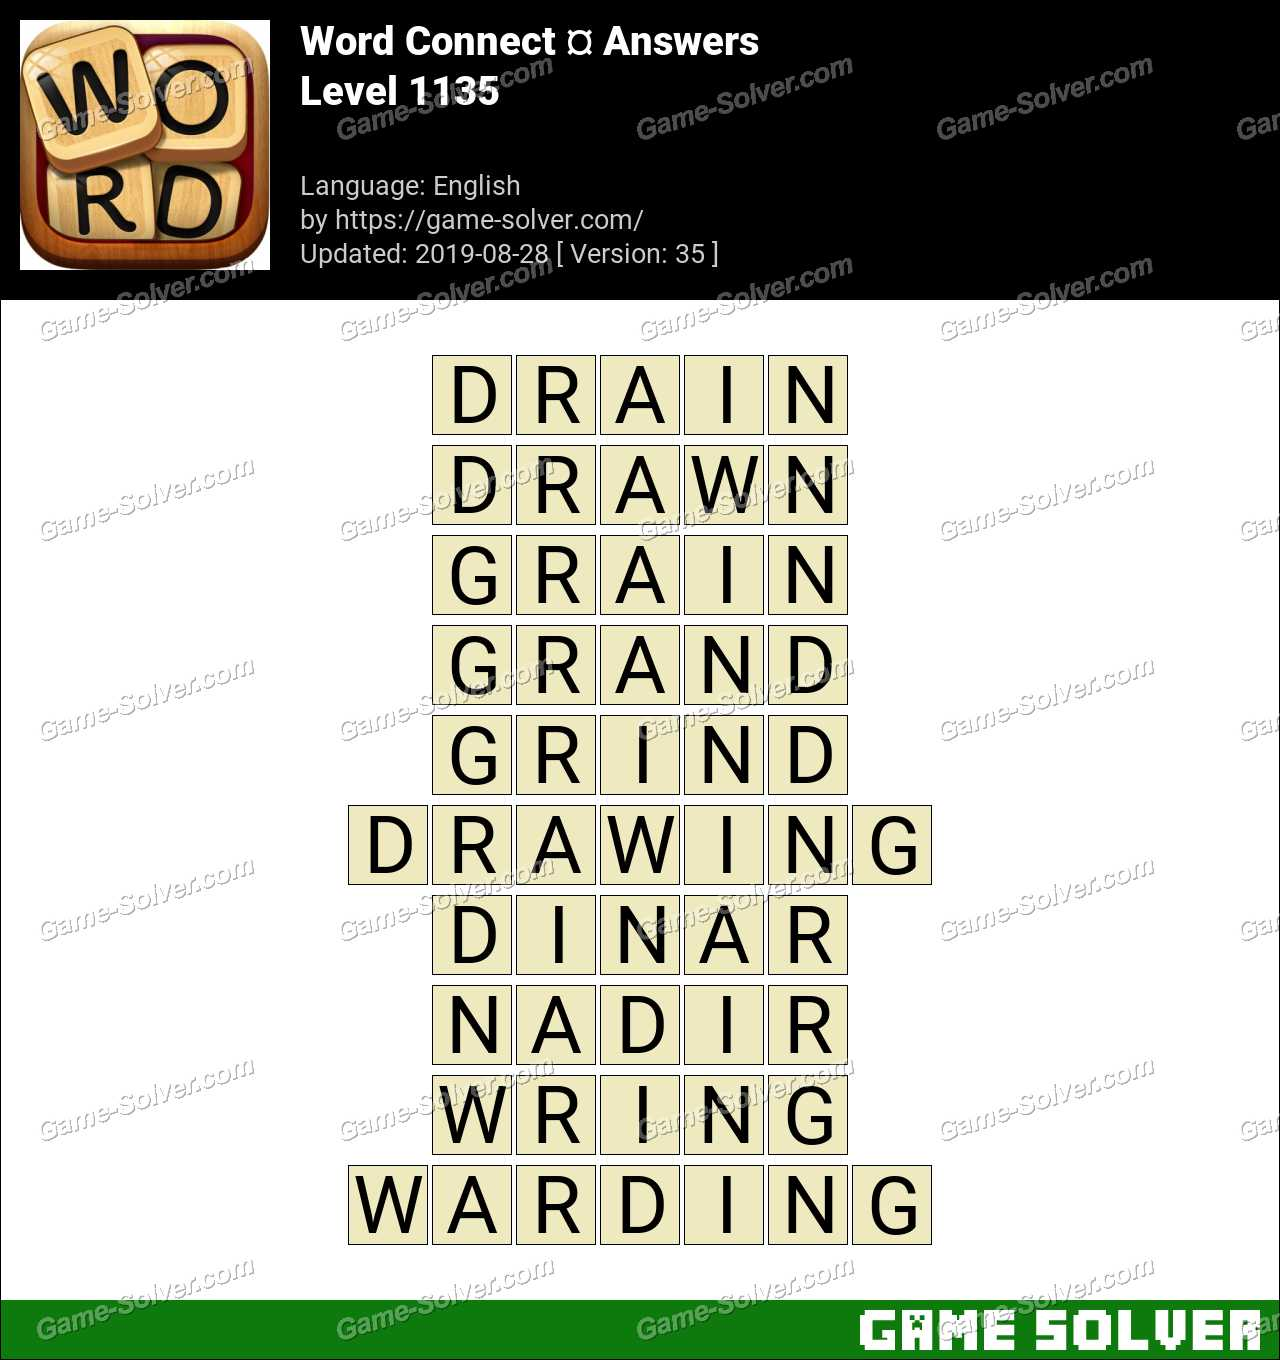 Word Connect Level 1135 Answers